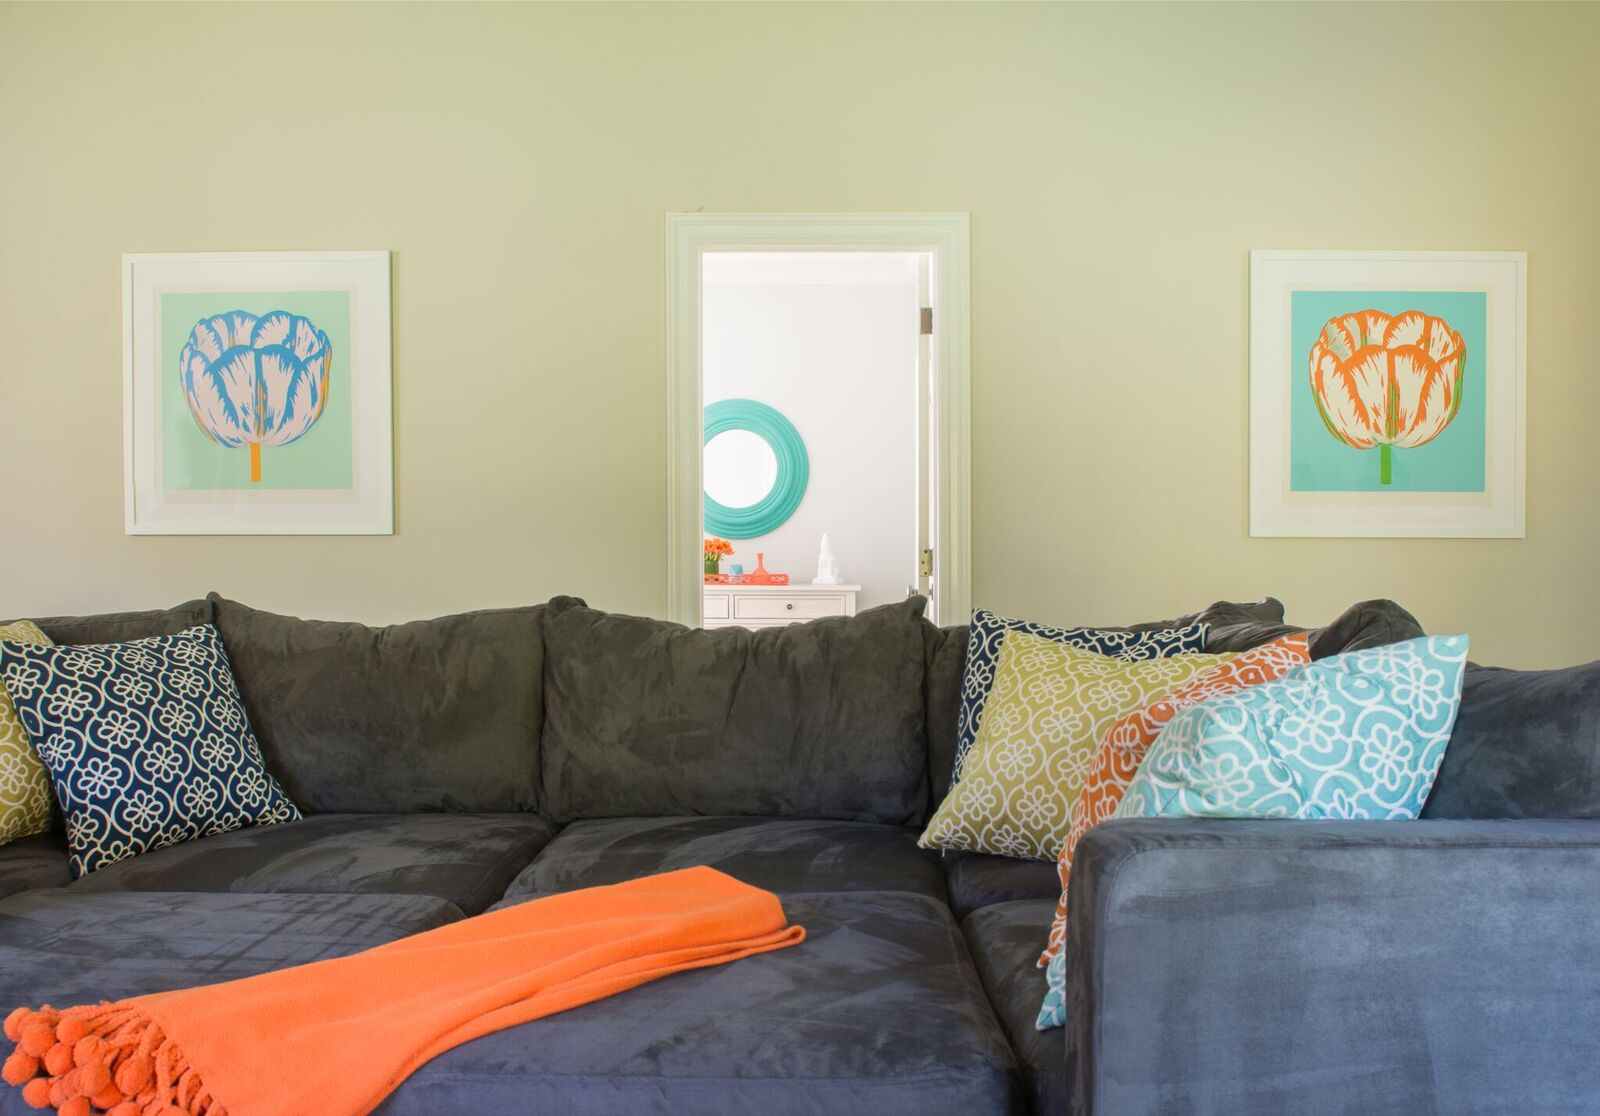 PLAYROOM - SECTIONAL AND ART